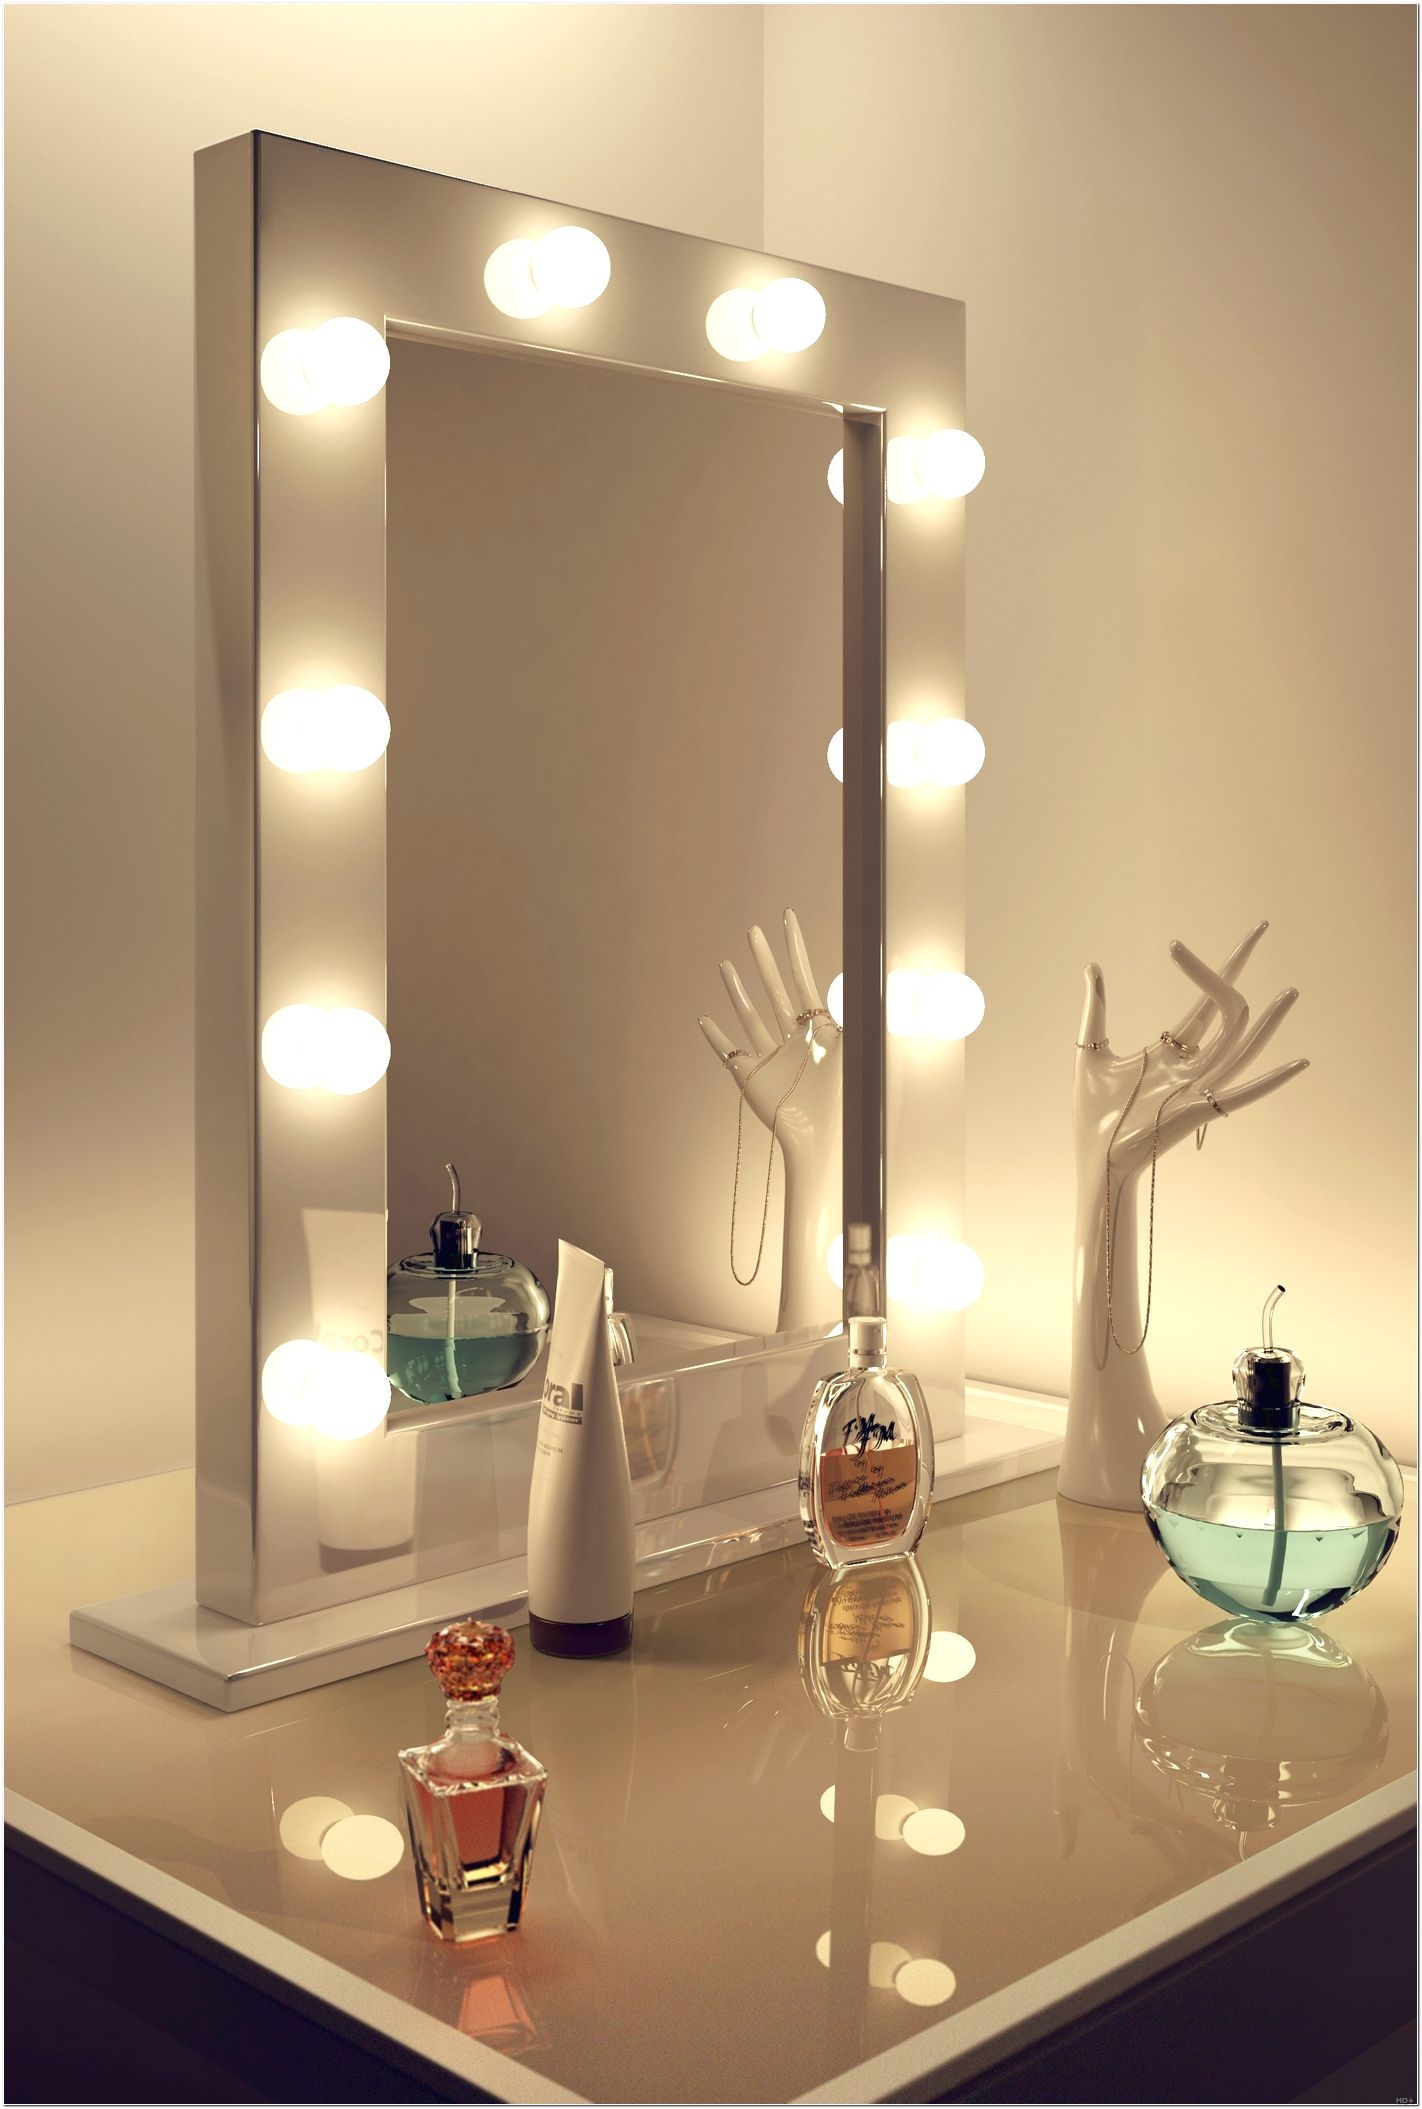 Contemporary Dressing Table Mirrors Design Ideas Interior Design With Contemporary Dressing Table Mirrors (Image 6 of 15)